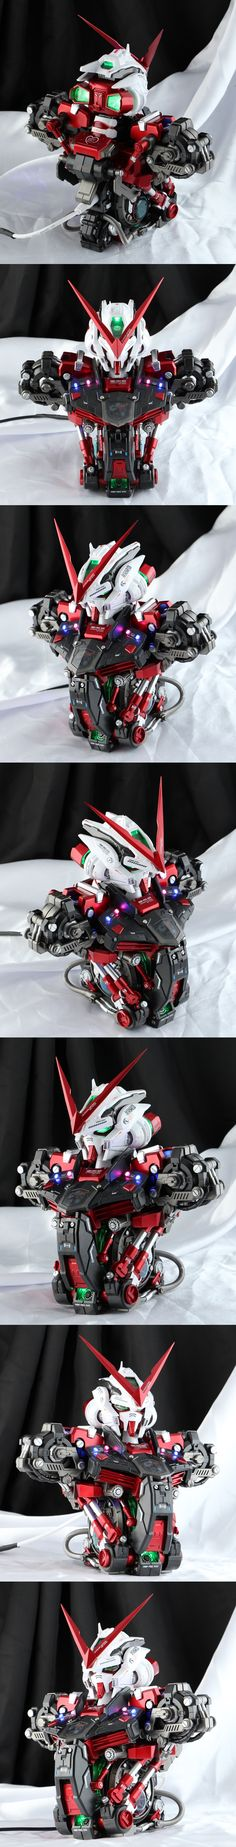 slimeponpon's 1/35 GUNDAM ASTRAY RED FRAME Head Desktop Model. Full REVIEW, Info